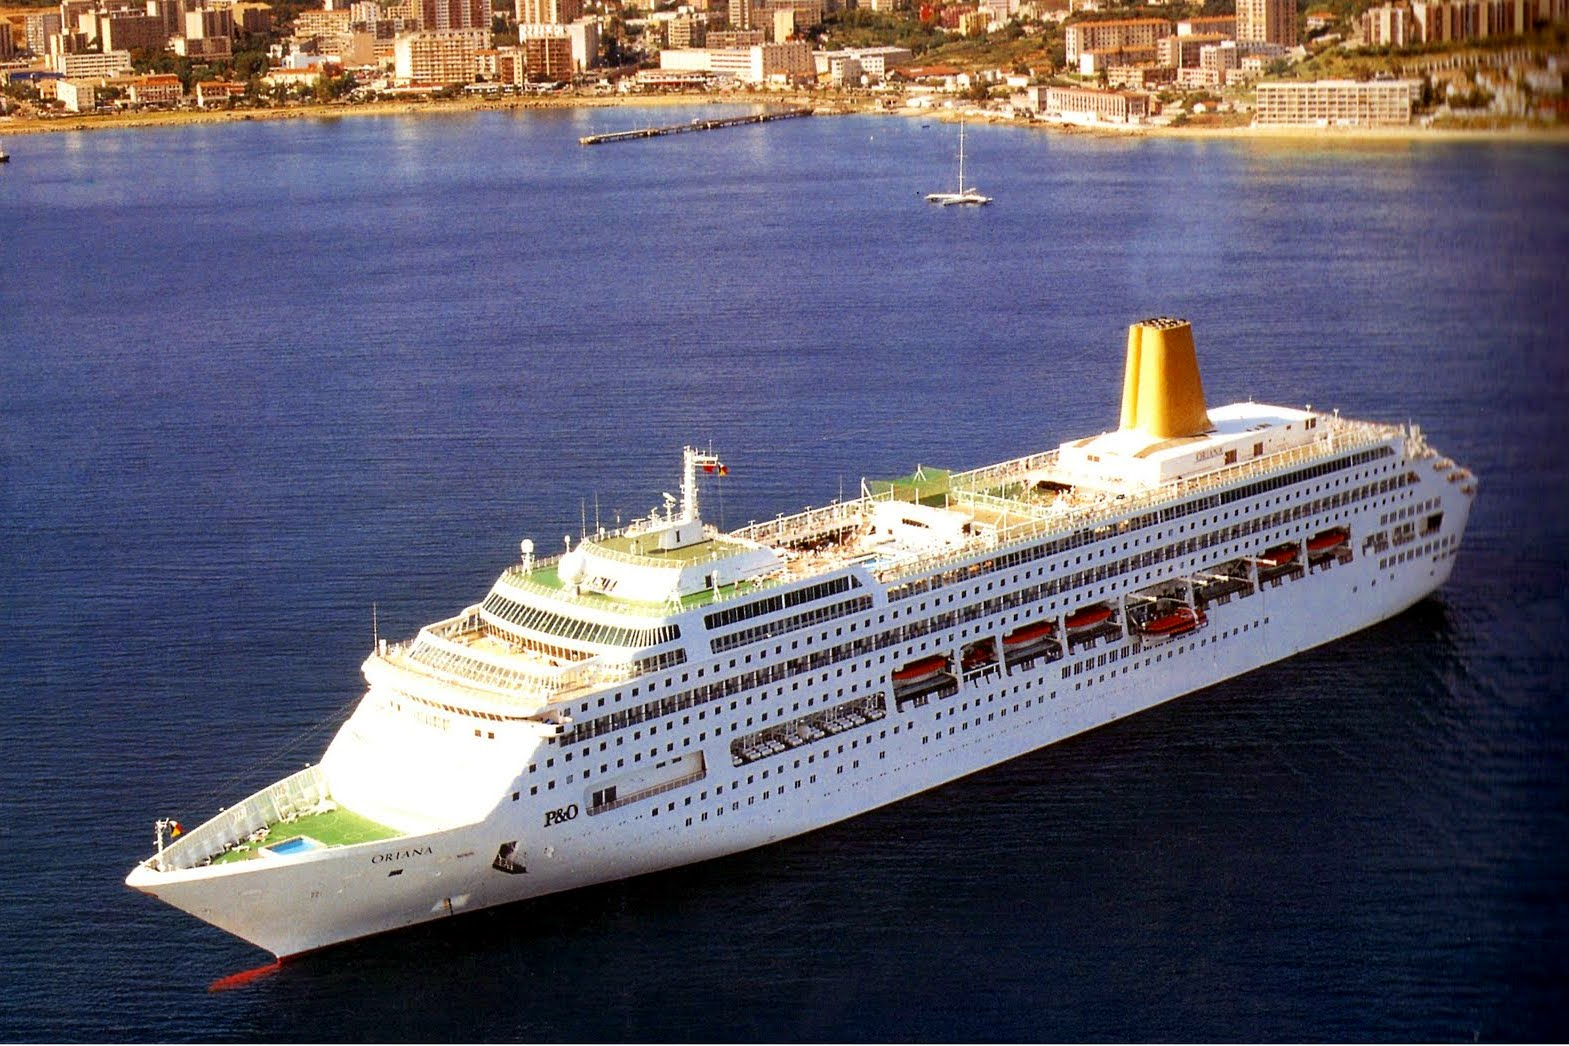 Oriana Cruise Review May Short Cruise To Guernsey - Oriana cruise ship